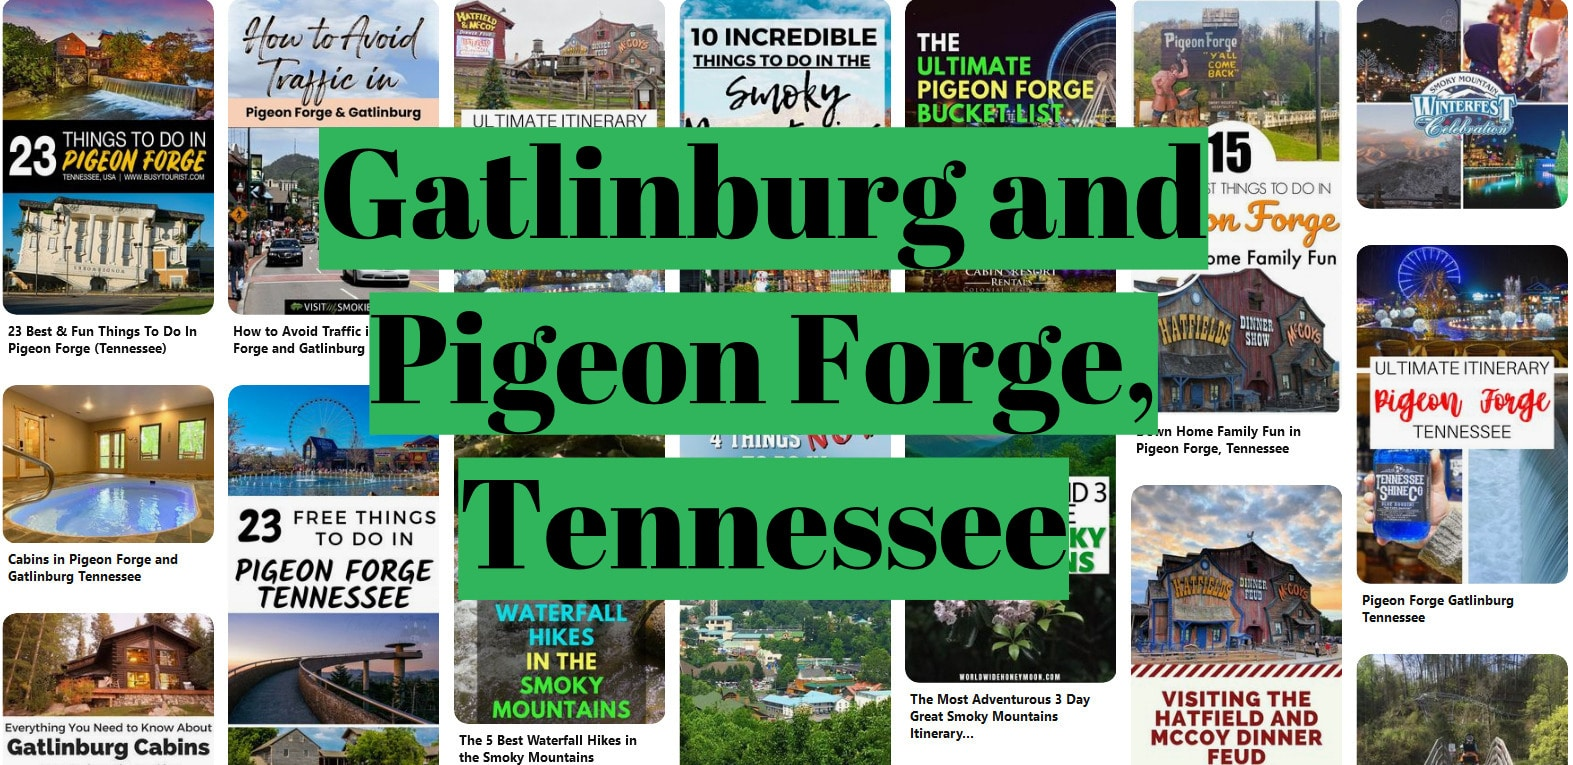 Gatlinburg and Pigeon Forge Tennessee